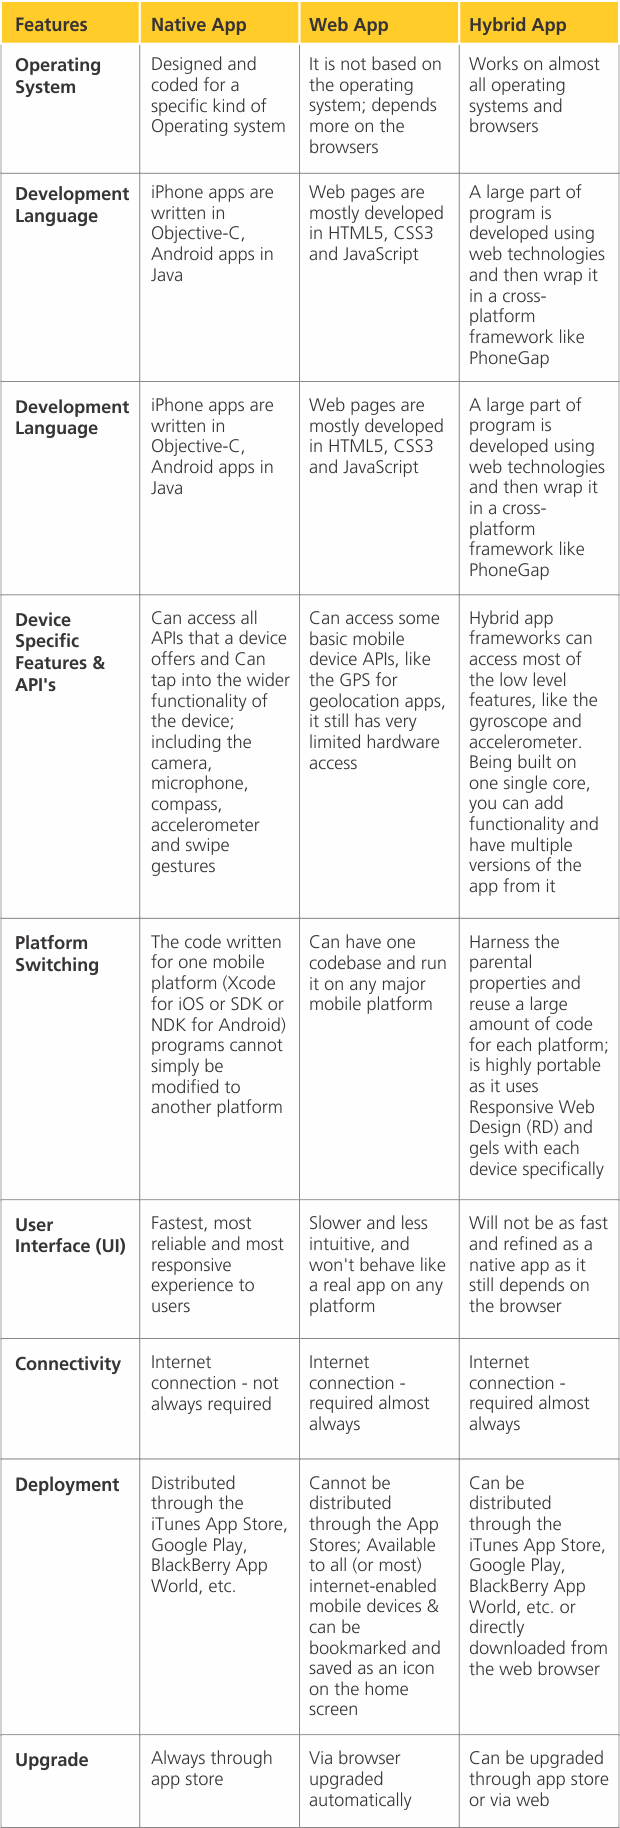 Comparison between Native, Web & Hybrid App